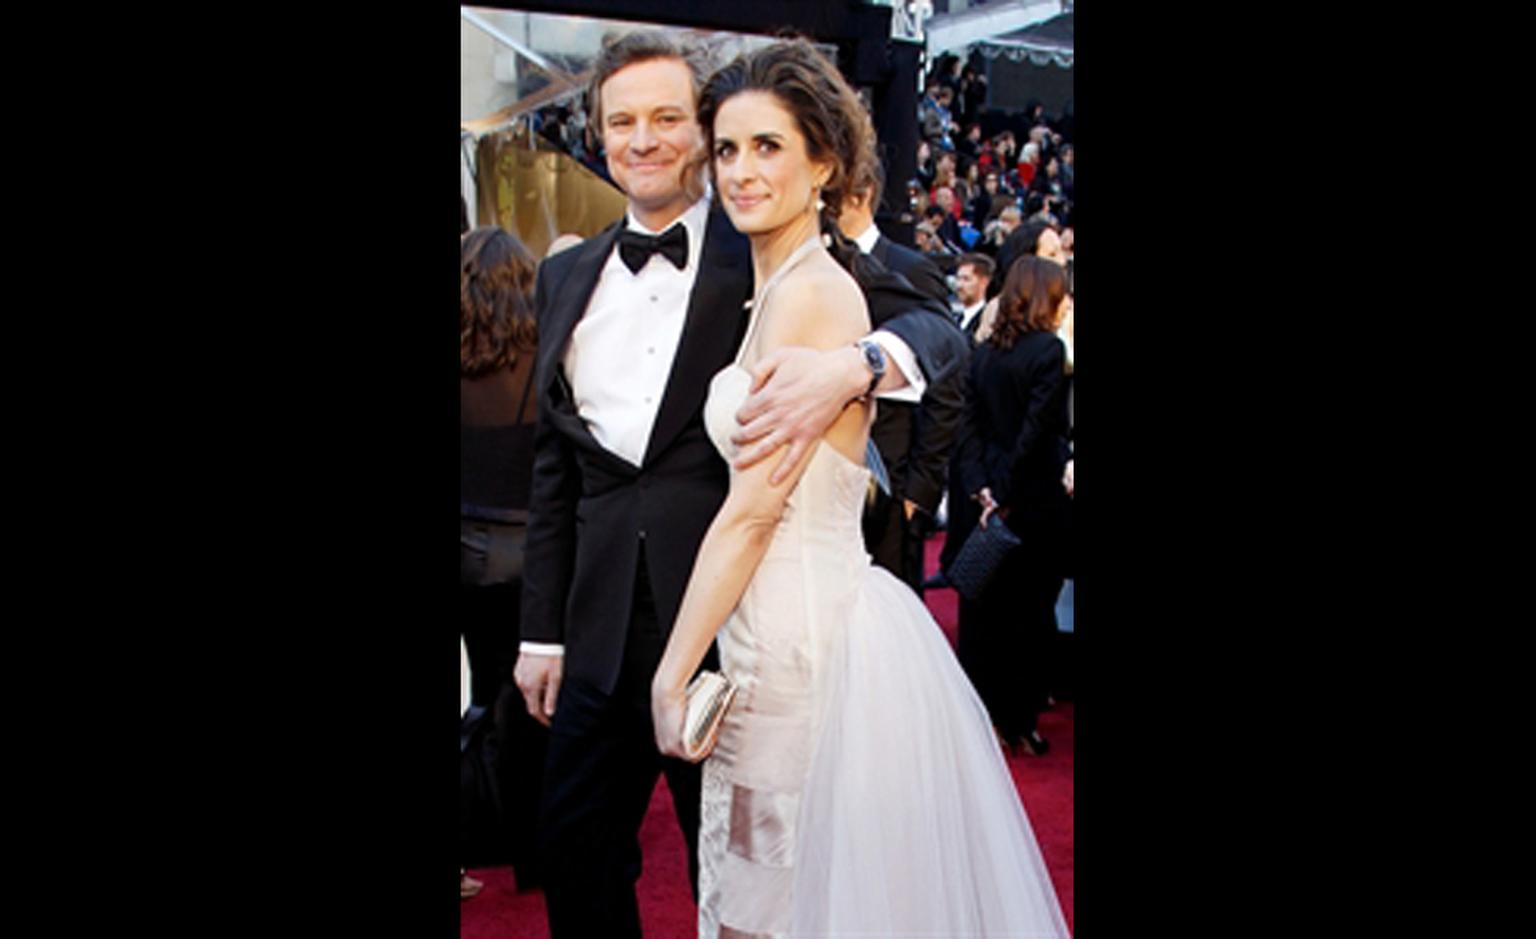 Colin Firth with a Chopard on his wrist and his wife Livia Giuggioli tucked under his arm at the Oscars 2011